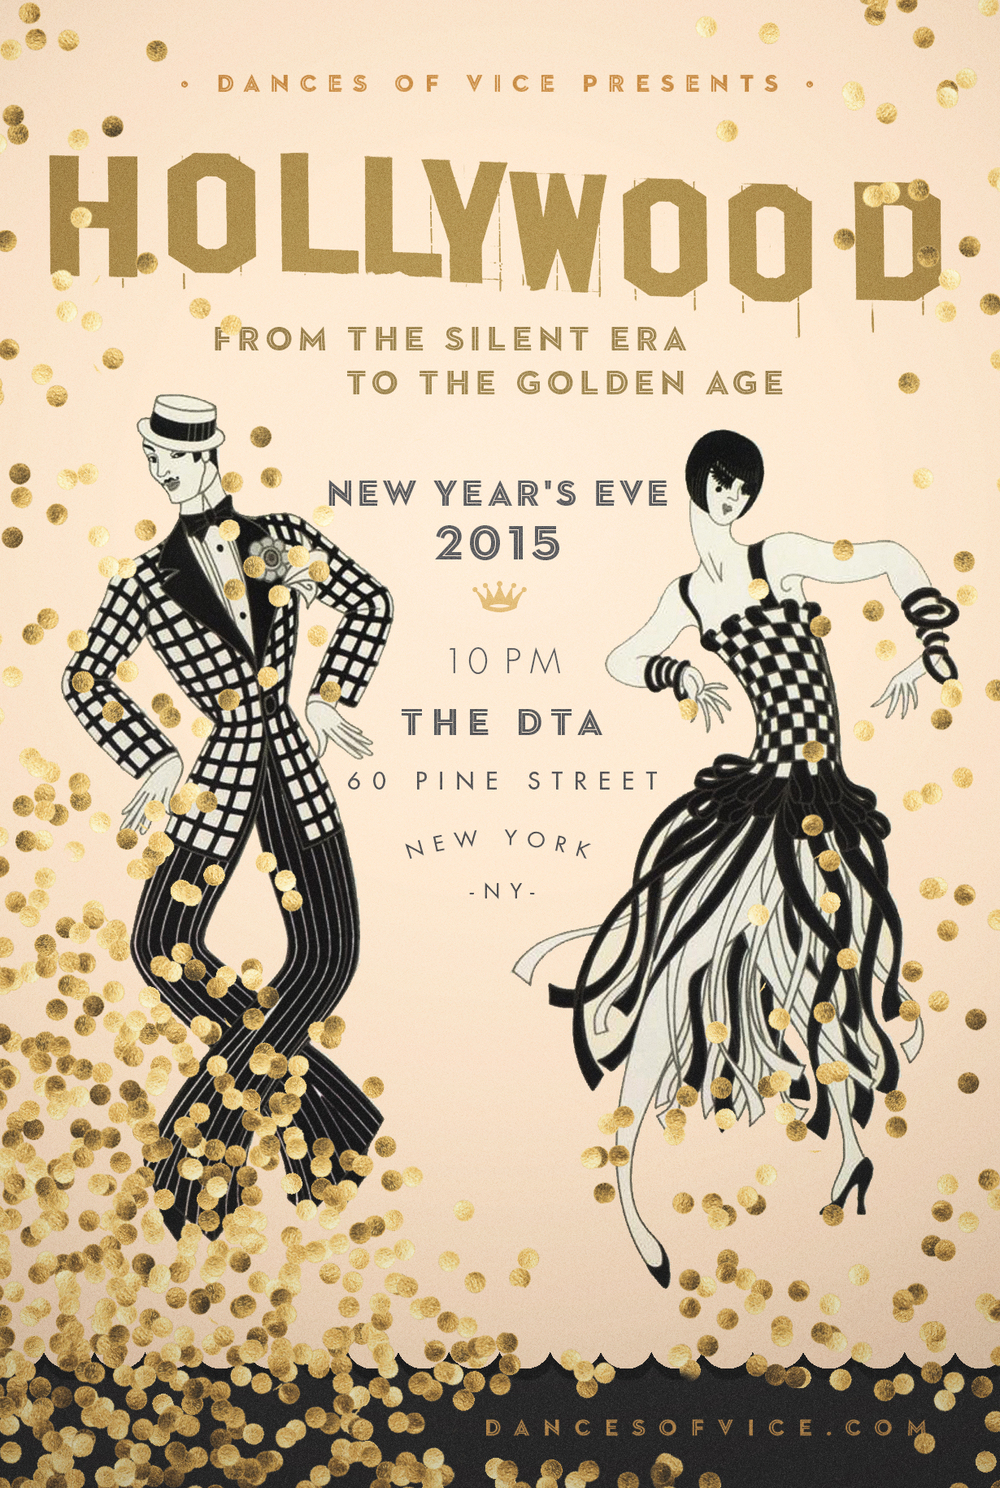 new years eve 2015 old hollywood dances of vice new york vintage burlesque costumed masquerade themed parties creative nightlife for